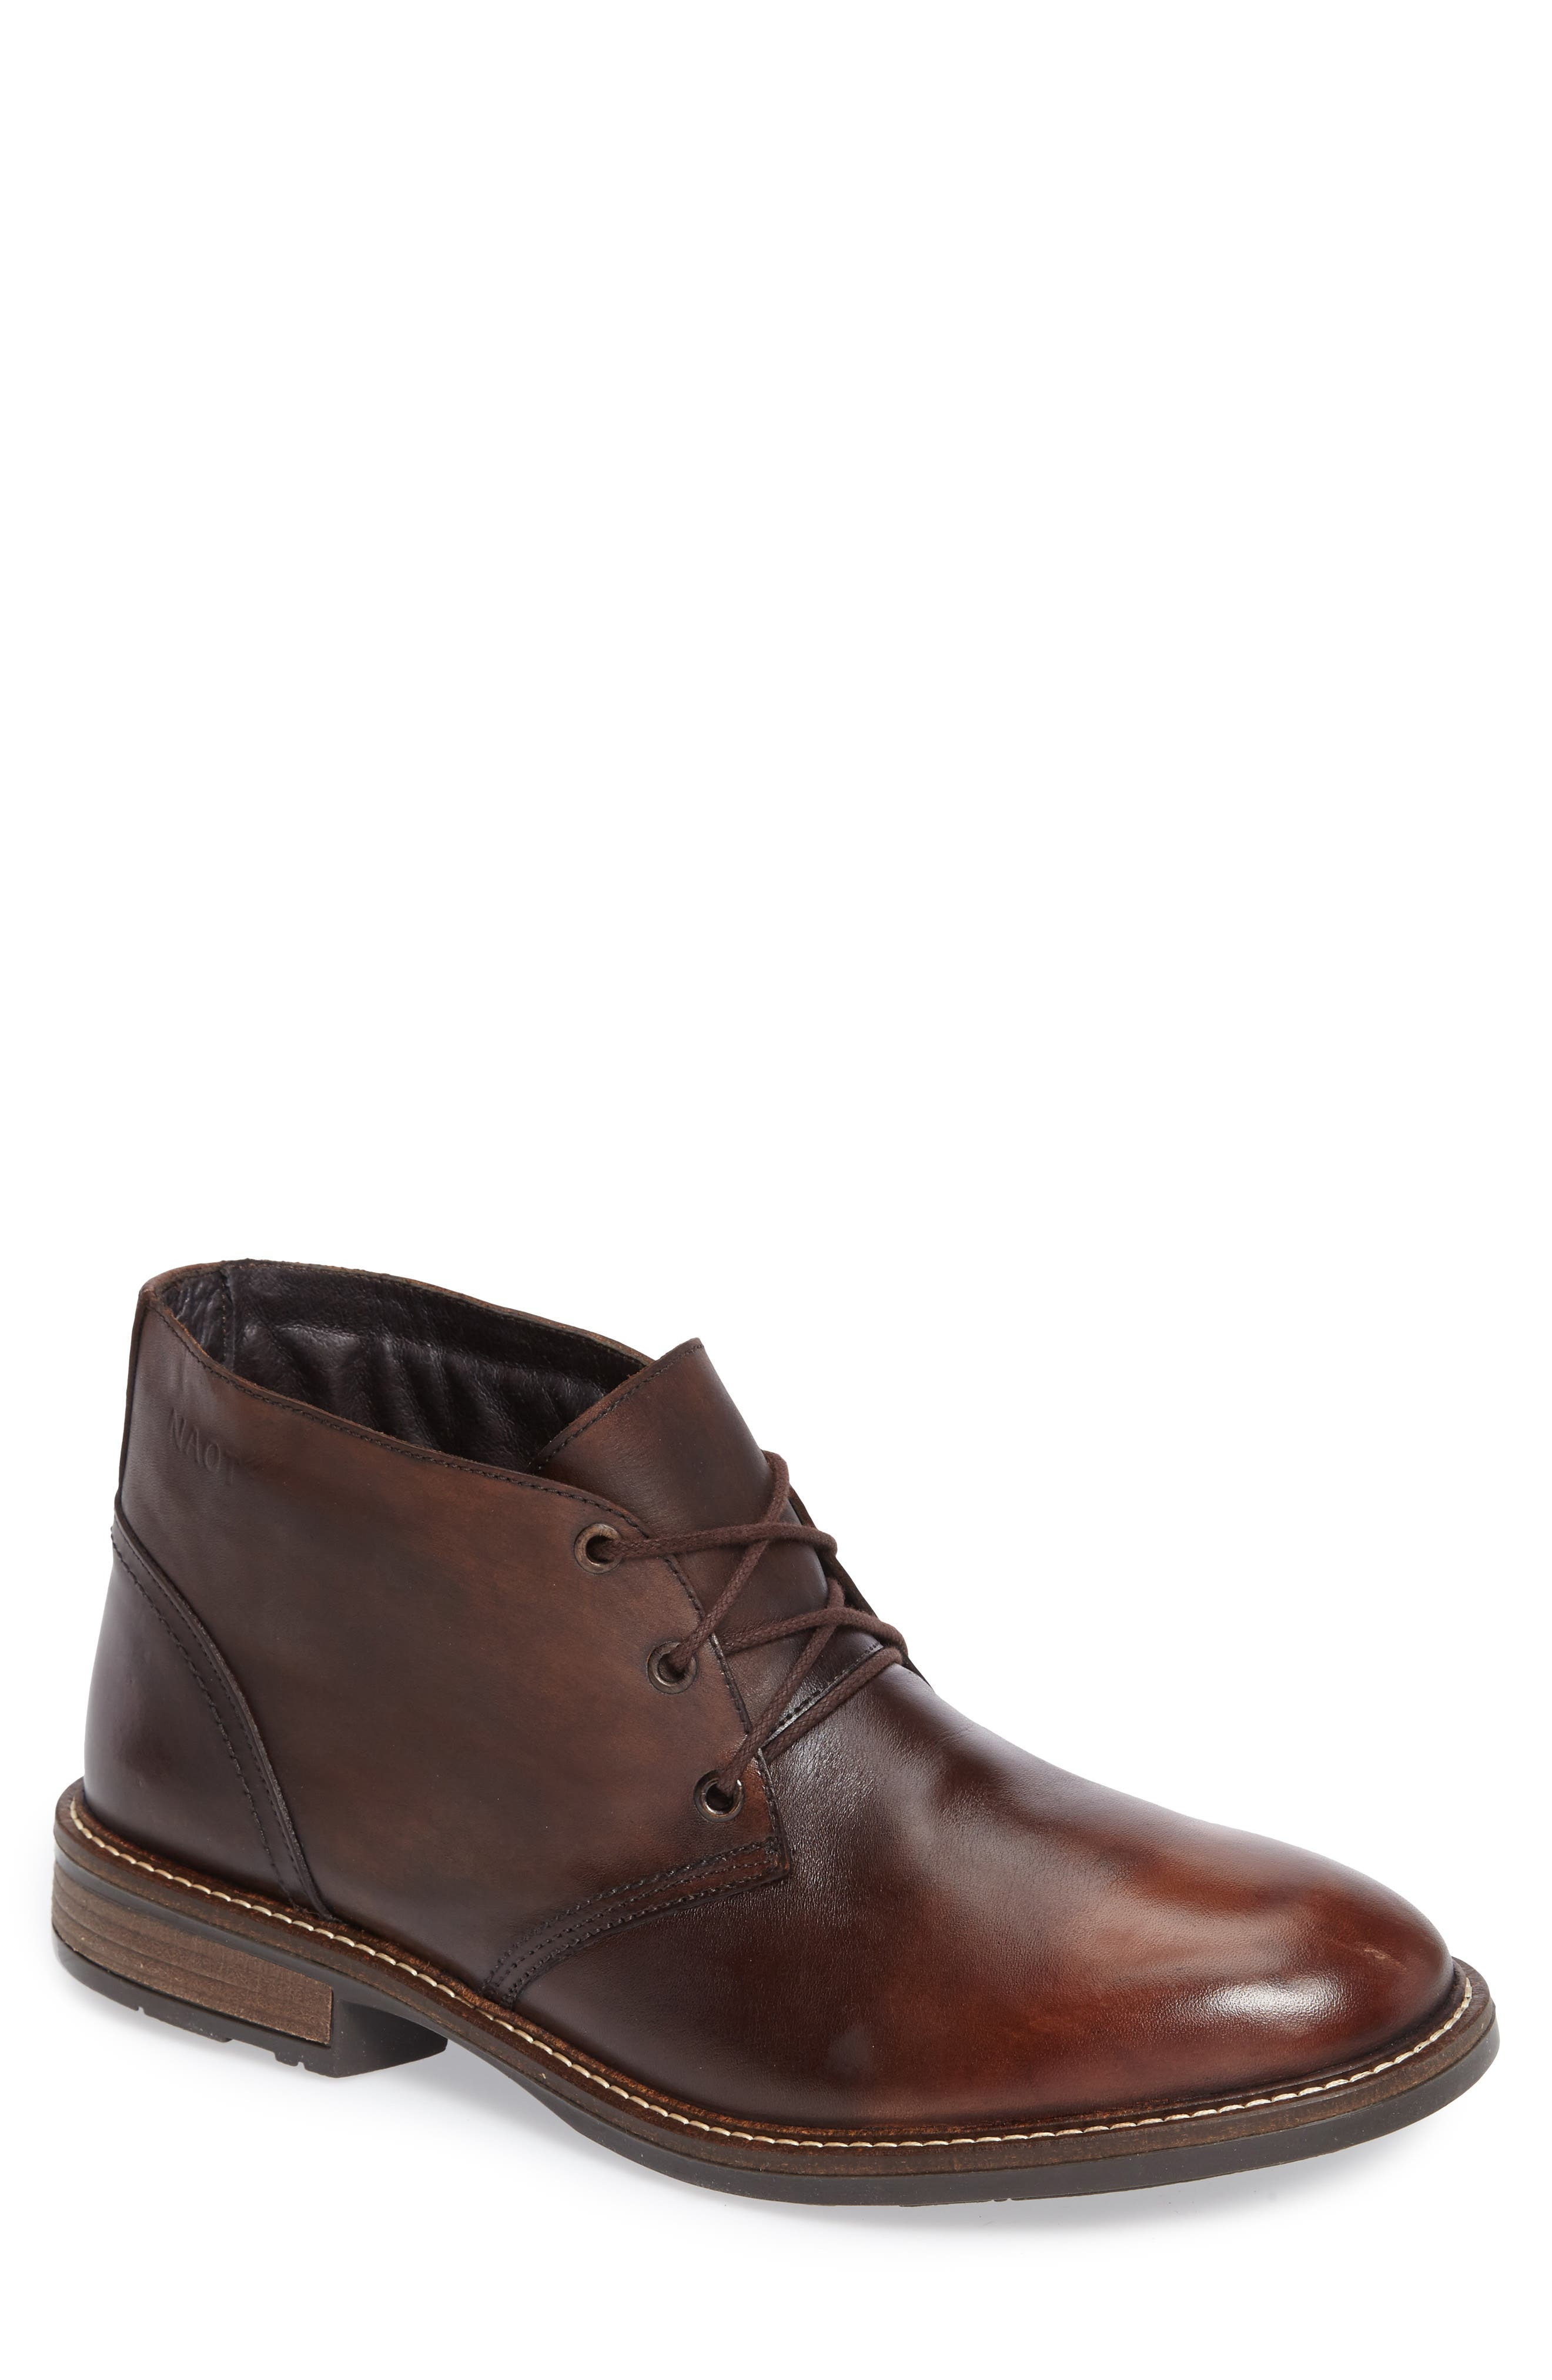 Pilot Chukka Boot,                         Main,                         color, BROWN GRADIENT LEATHER